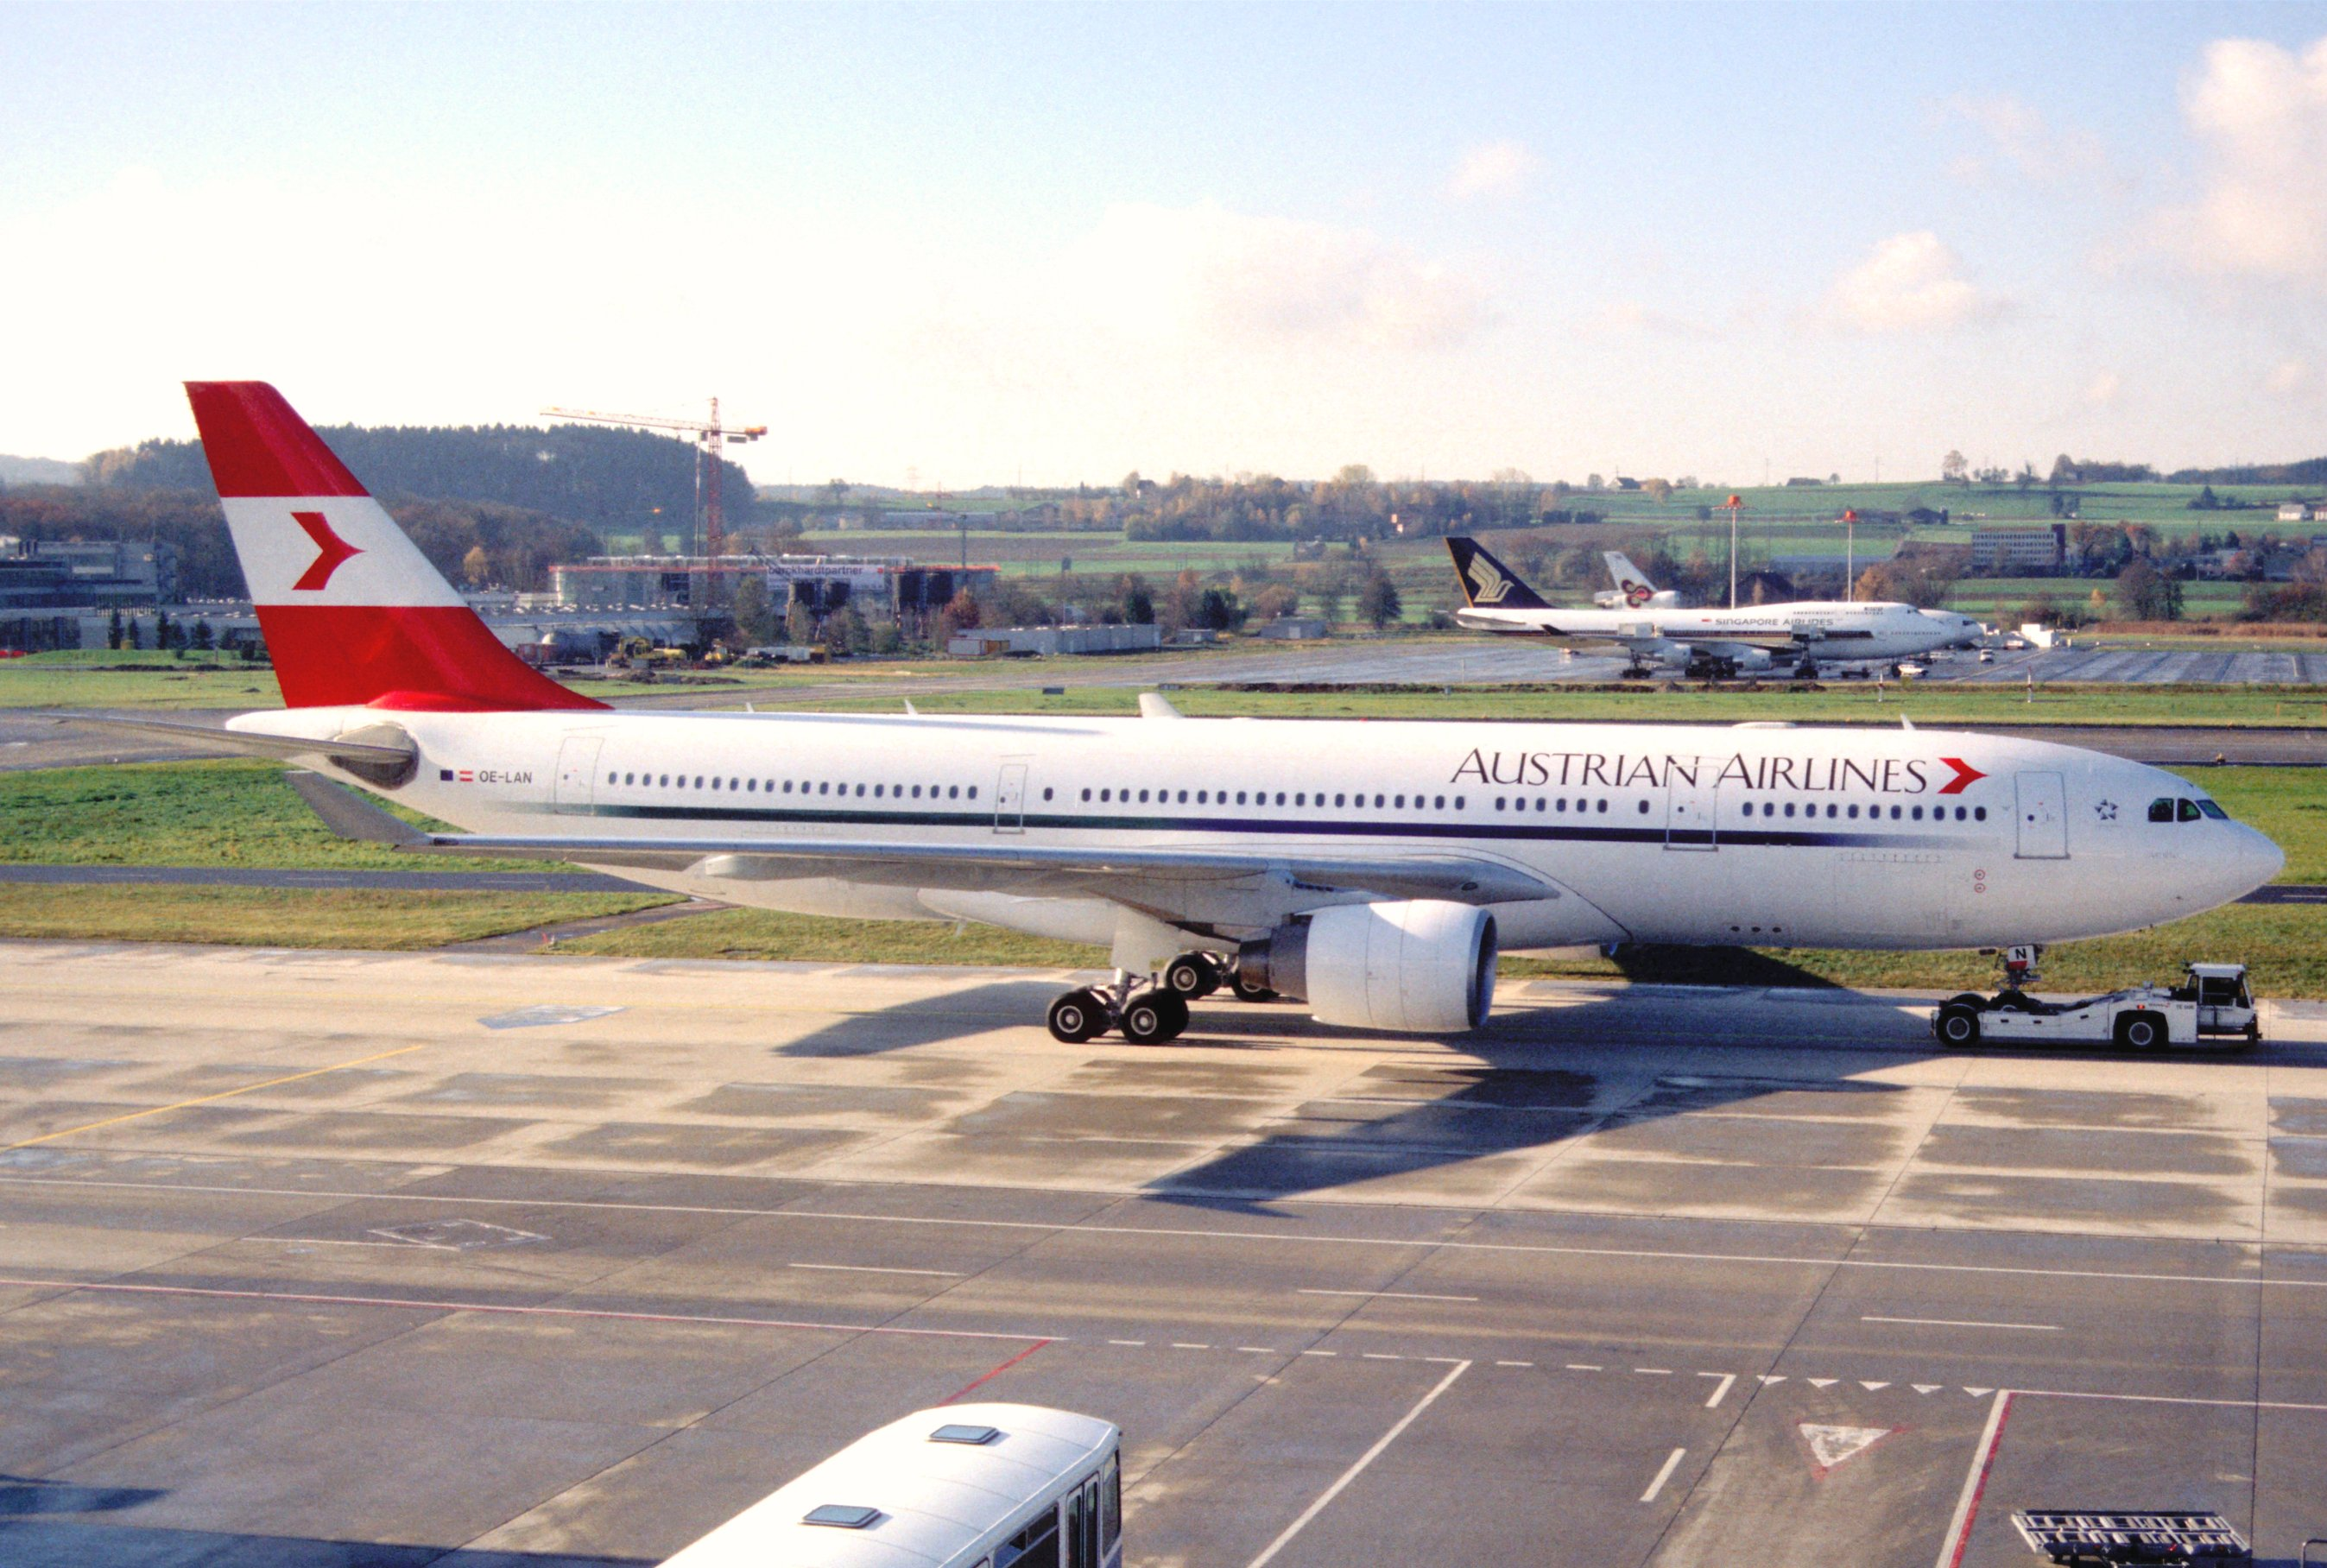 File:117aa - Austrian Airlines Airbus A330-223, OE-LAN@ZRH ... American Airlines